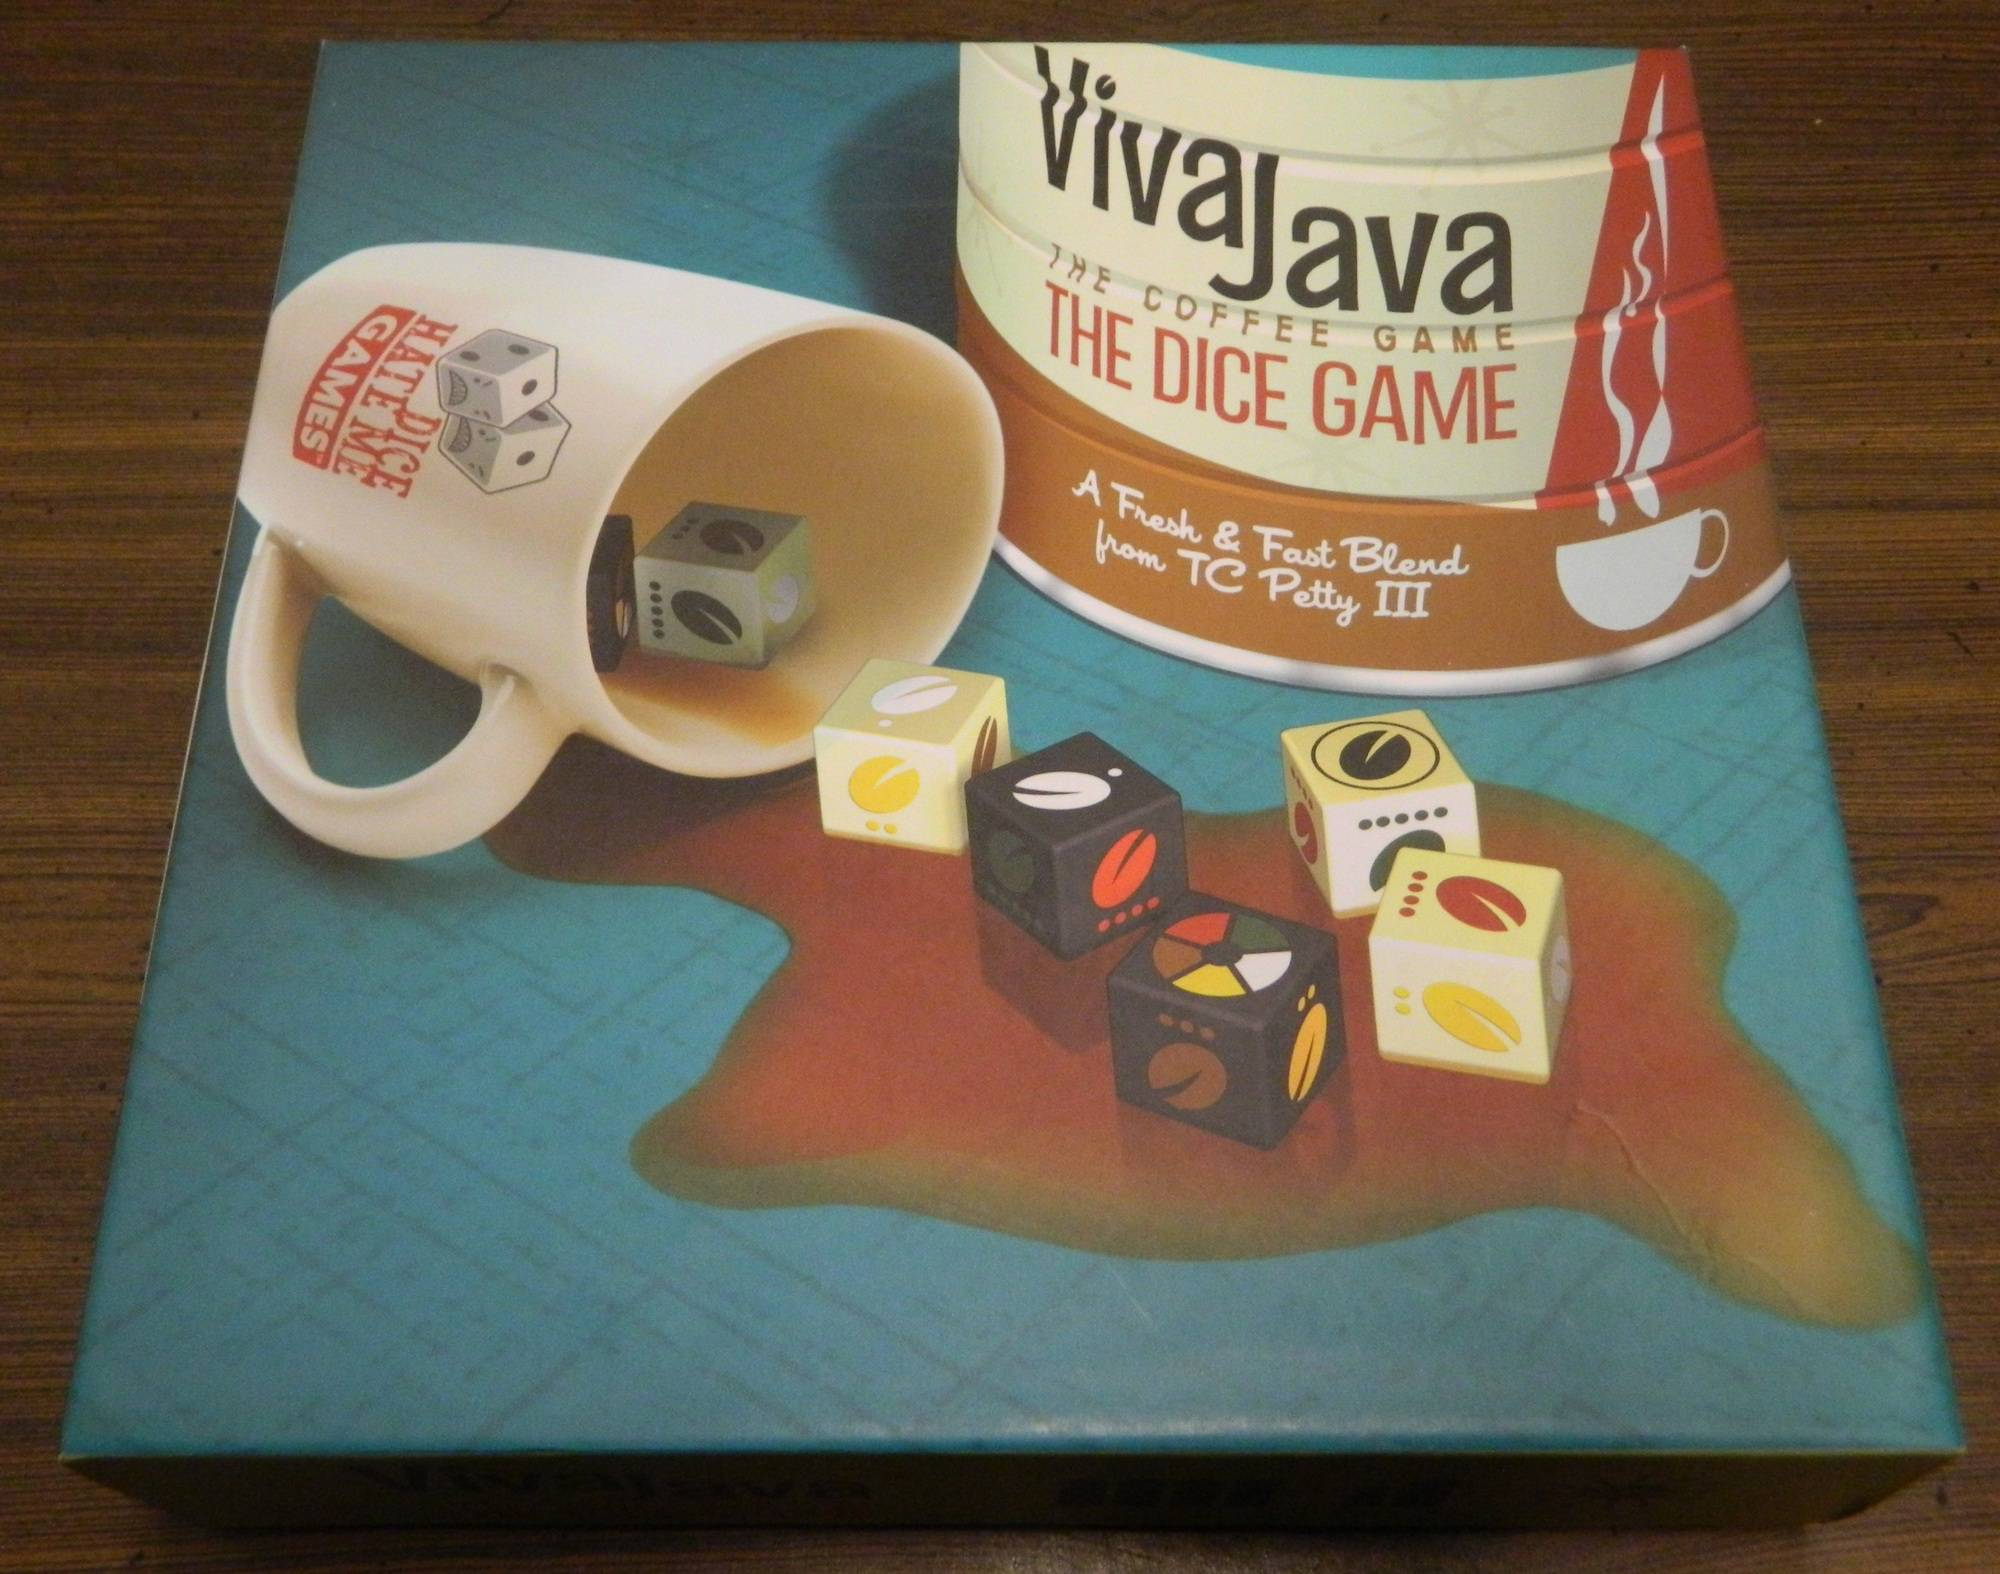 Box for Viva Java Dice Game